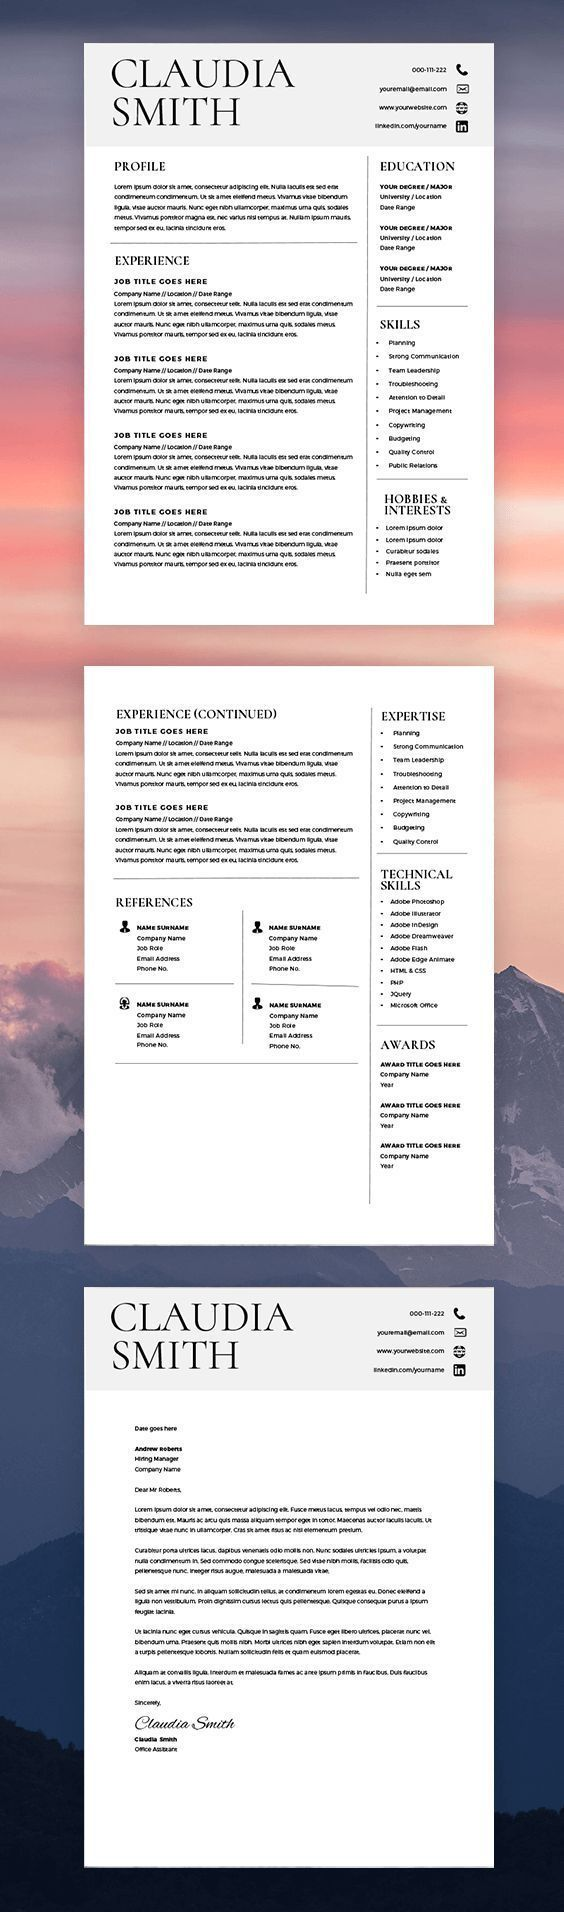 Medical Resume Template Word Minimalist Resume With Cover Letter